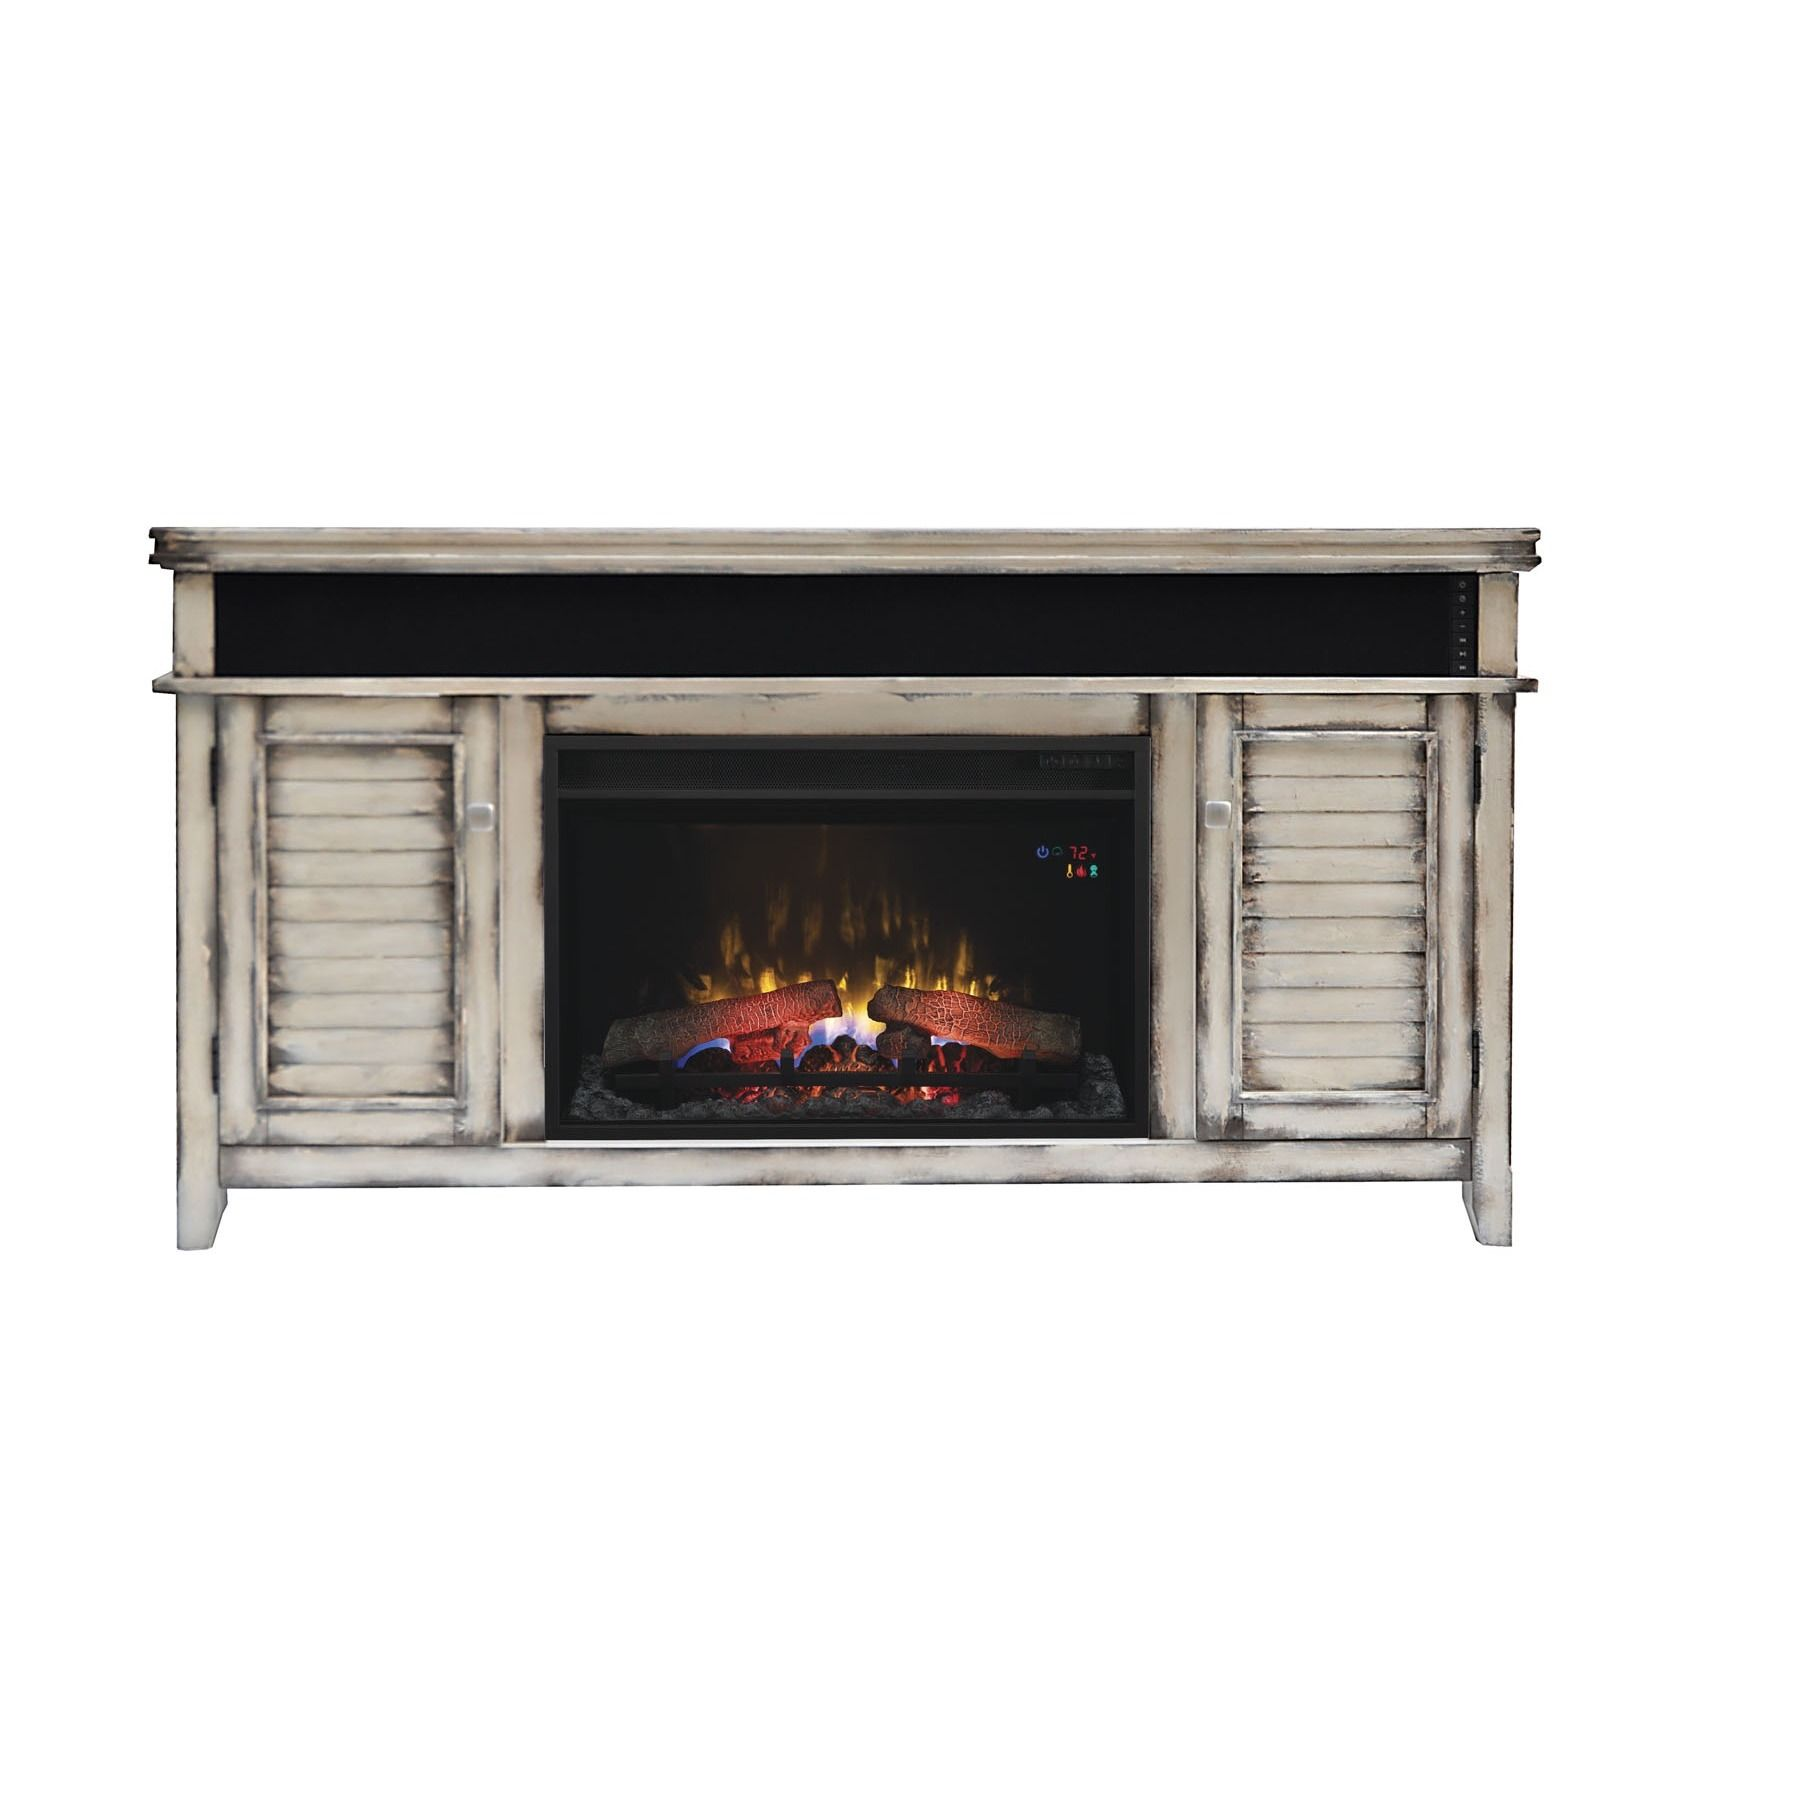 Classic flame belmont 60 quot tv stand with electric fireplace - Shop For Simmons Classic Flame Electric Indoor Fireplace Media Mantel In A White Finish Get Free Delivery At Your Online Home Decor Outlet Store